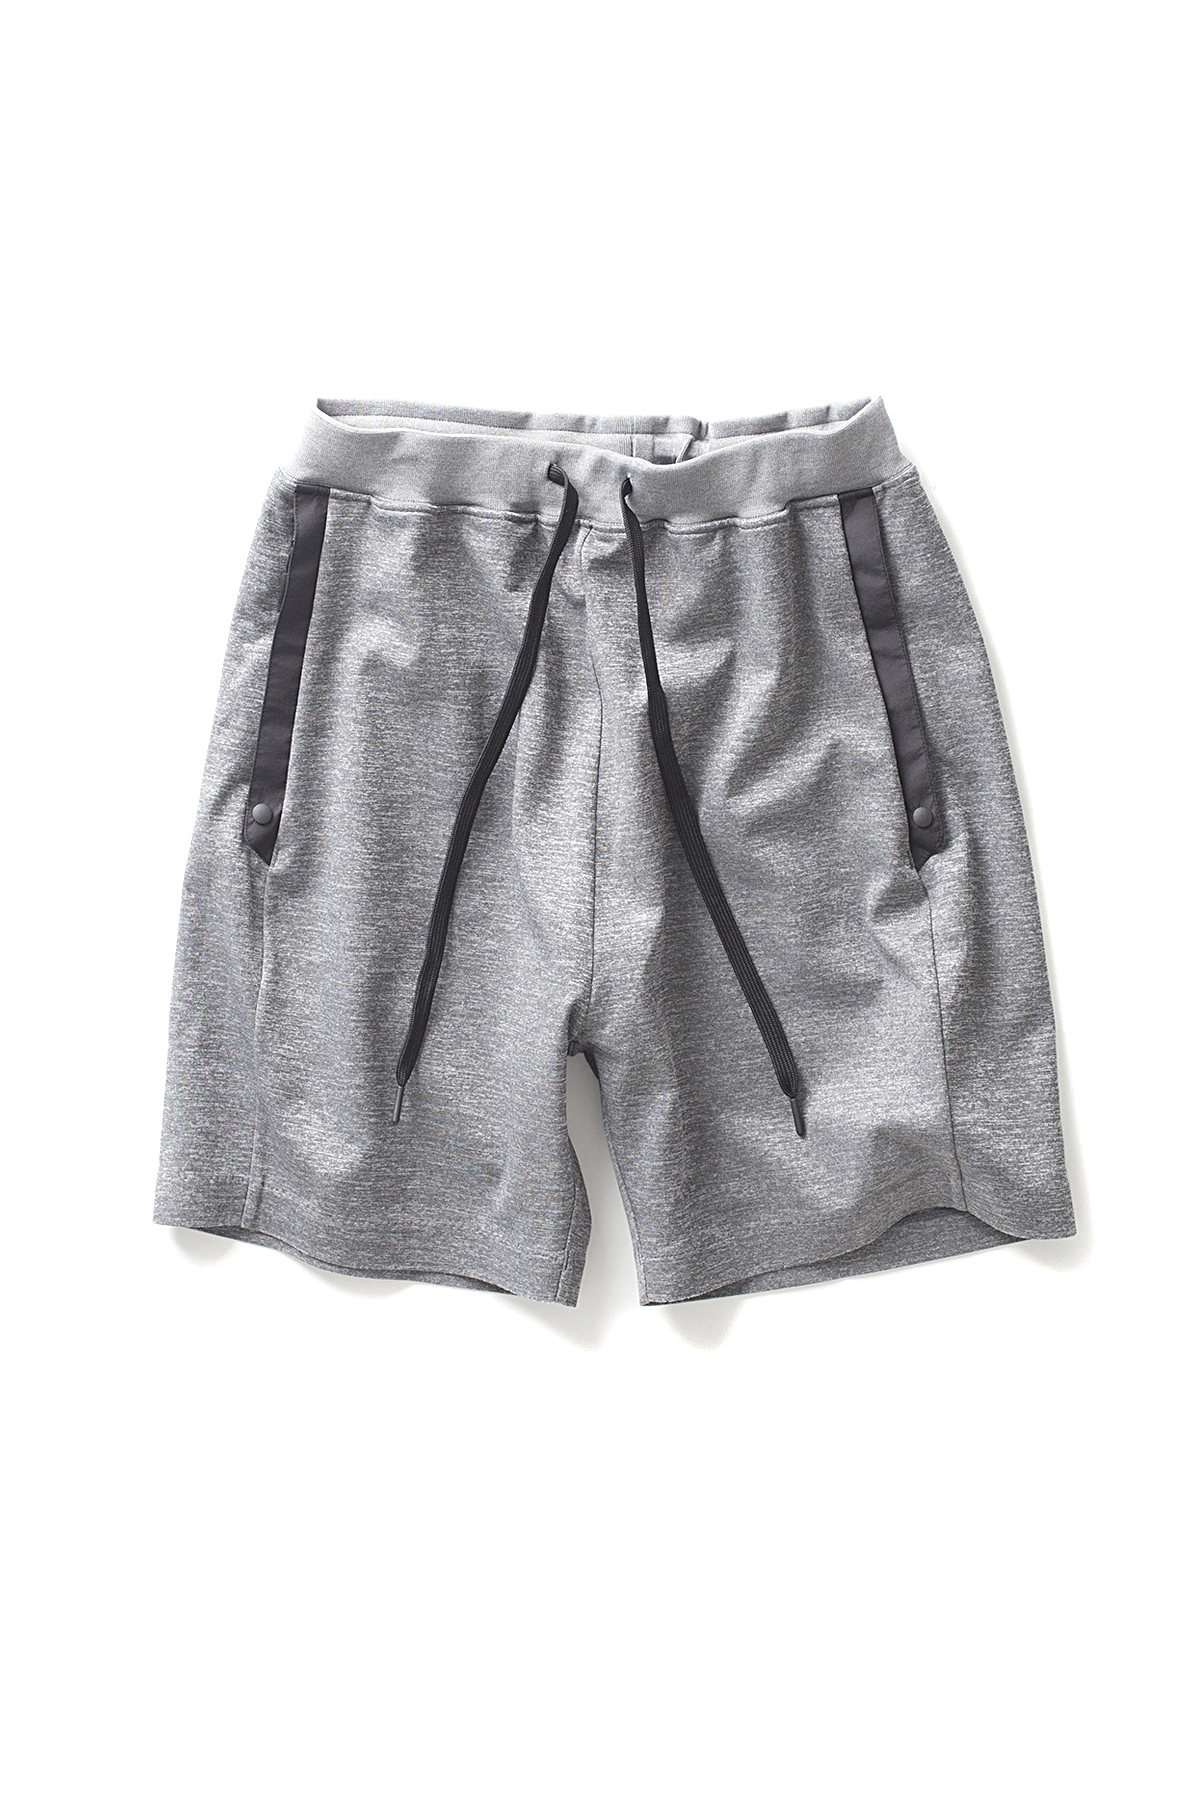 alk phenix : Tab Shorts (Heather Grey)